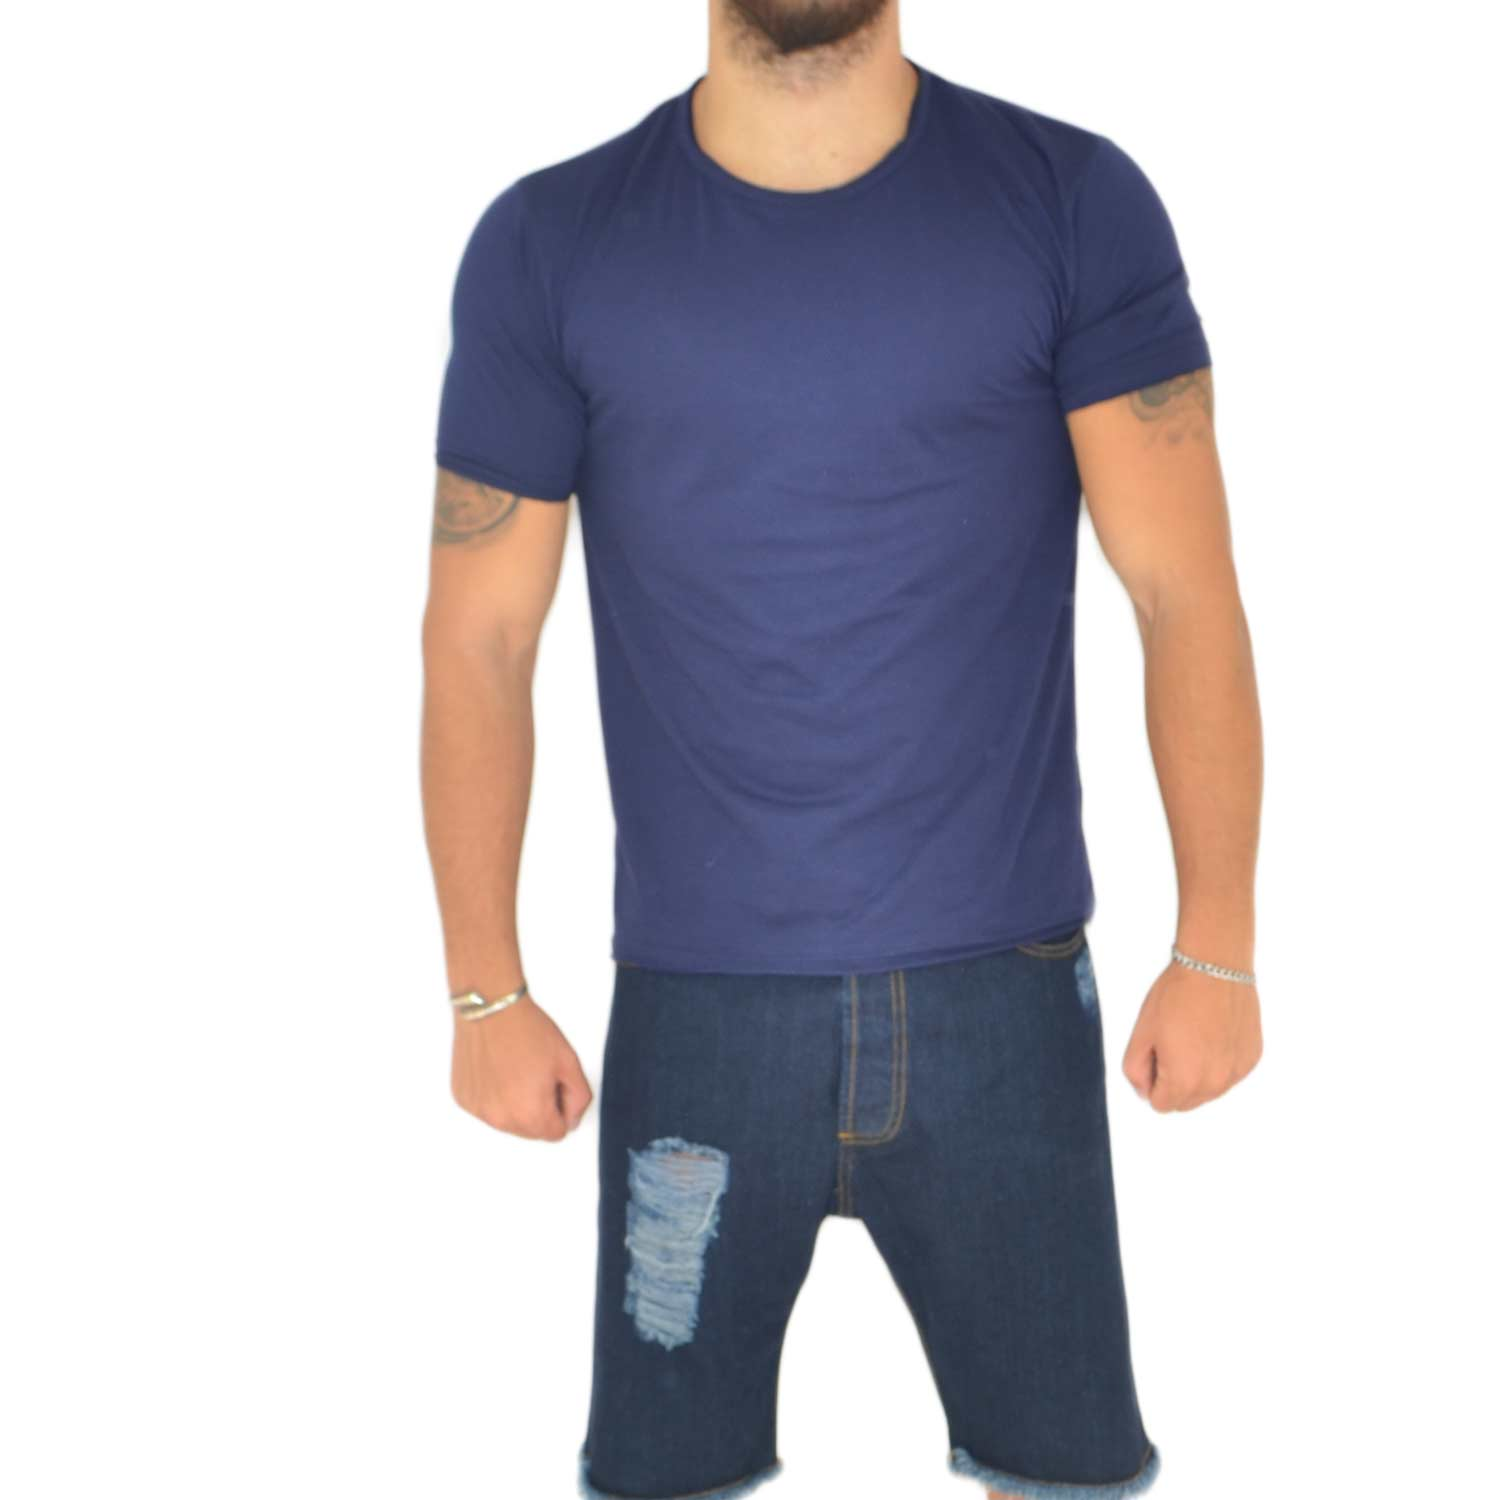 T- shirt basic uomo in cotone elastico blu avion slim fit girocollo con cucitura in tinta made in italy